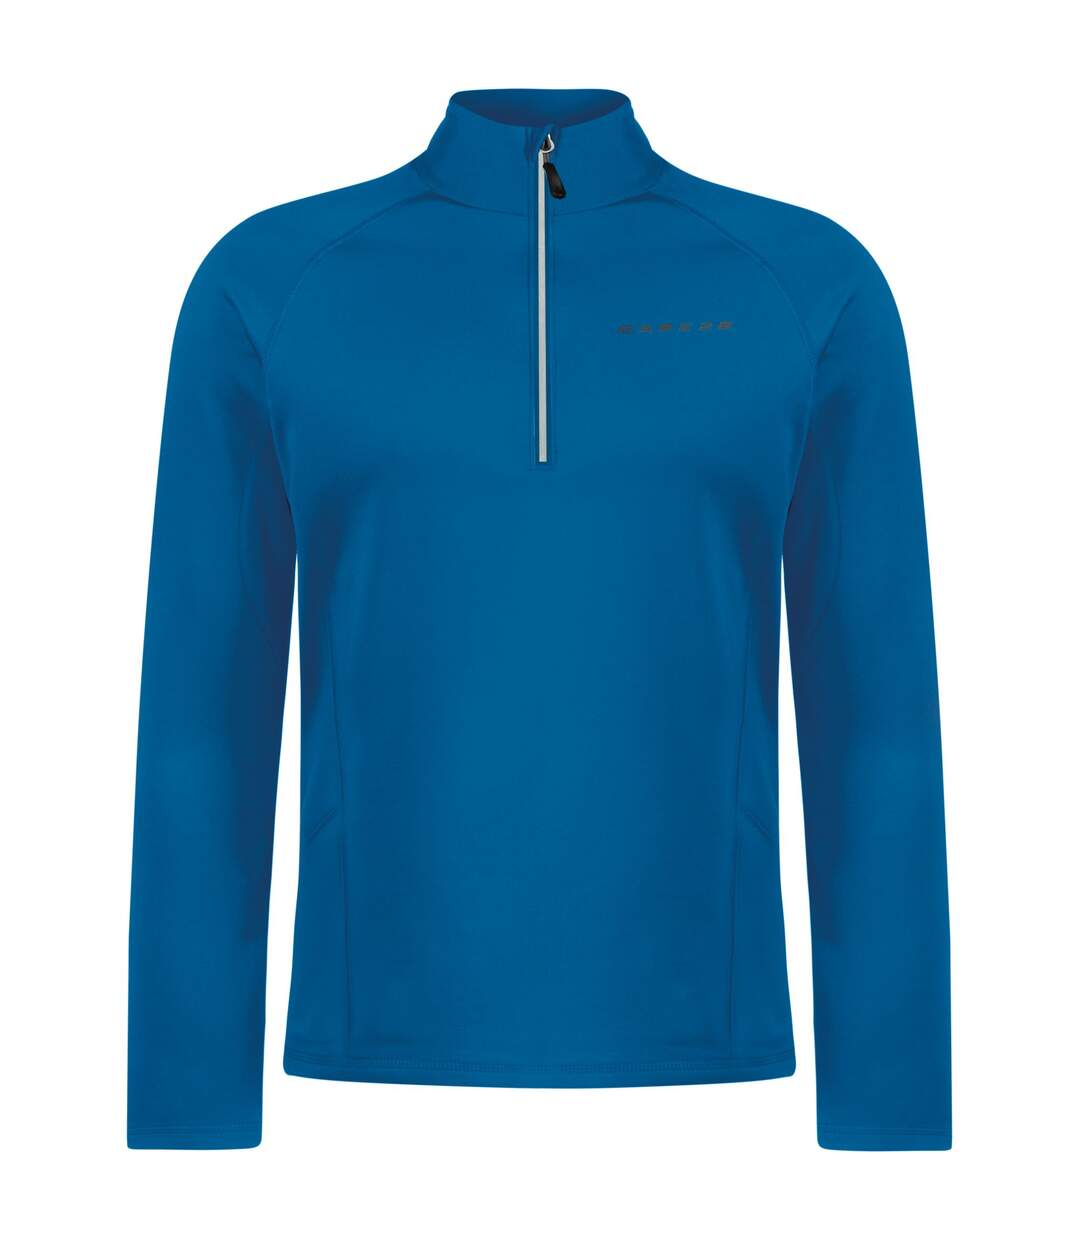 Dare 2B - Pull INTERFUSE - Homme (Bleu) - UTRG2605